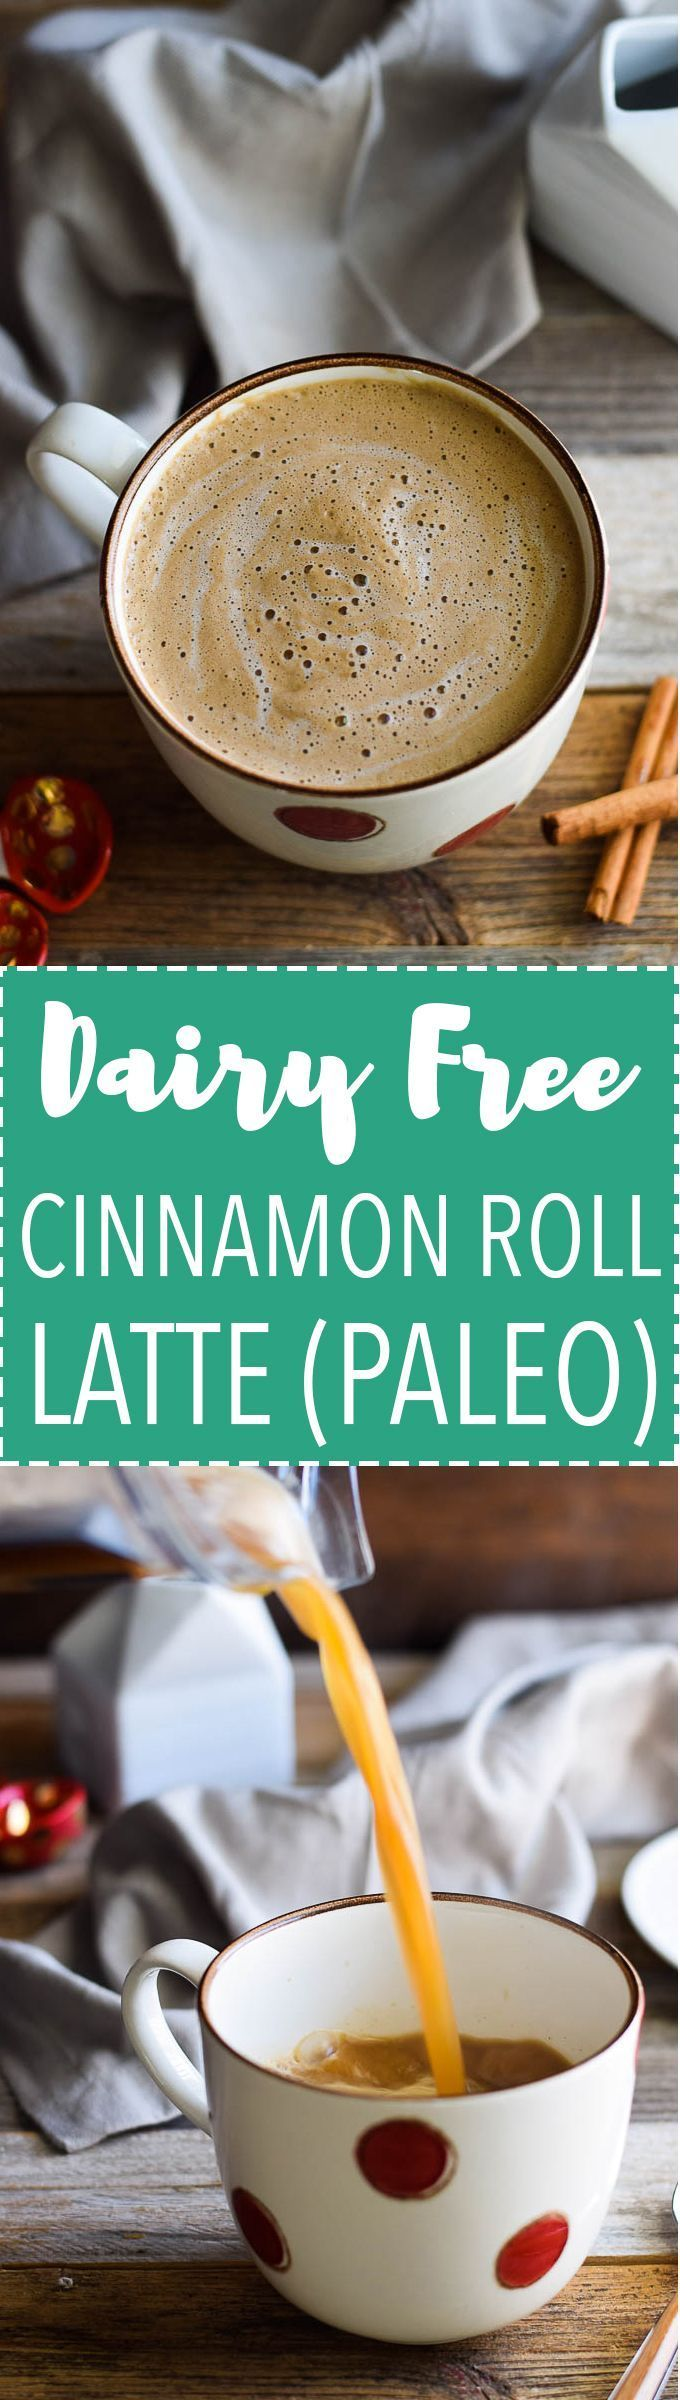 Healthy Cinnamon Roll Latte made with maple syrup and coconut milk! Dairy free, paleo.